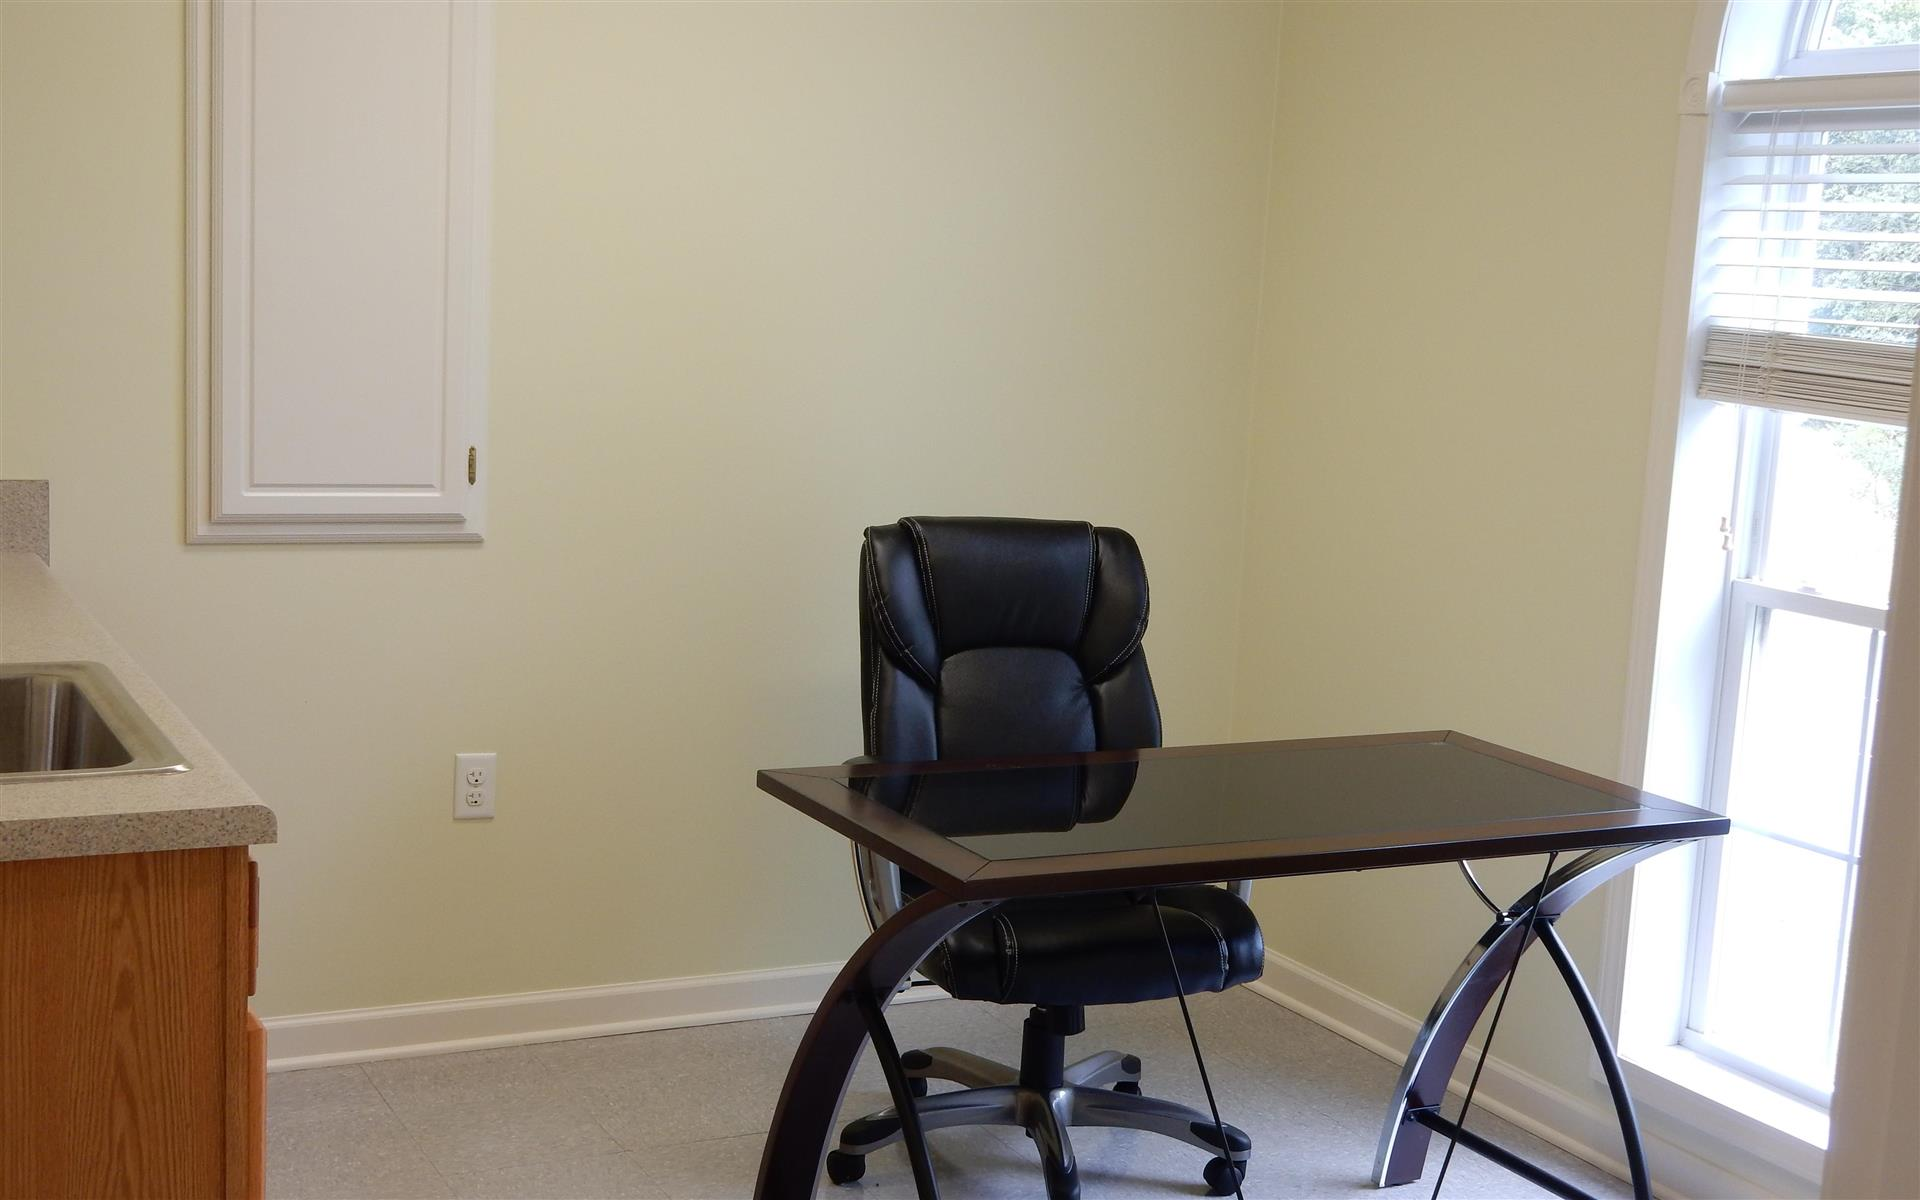 Asheville Coworking Offices - Upscale Private Offices (Copy)